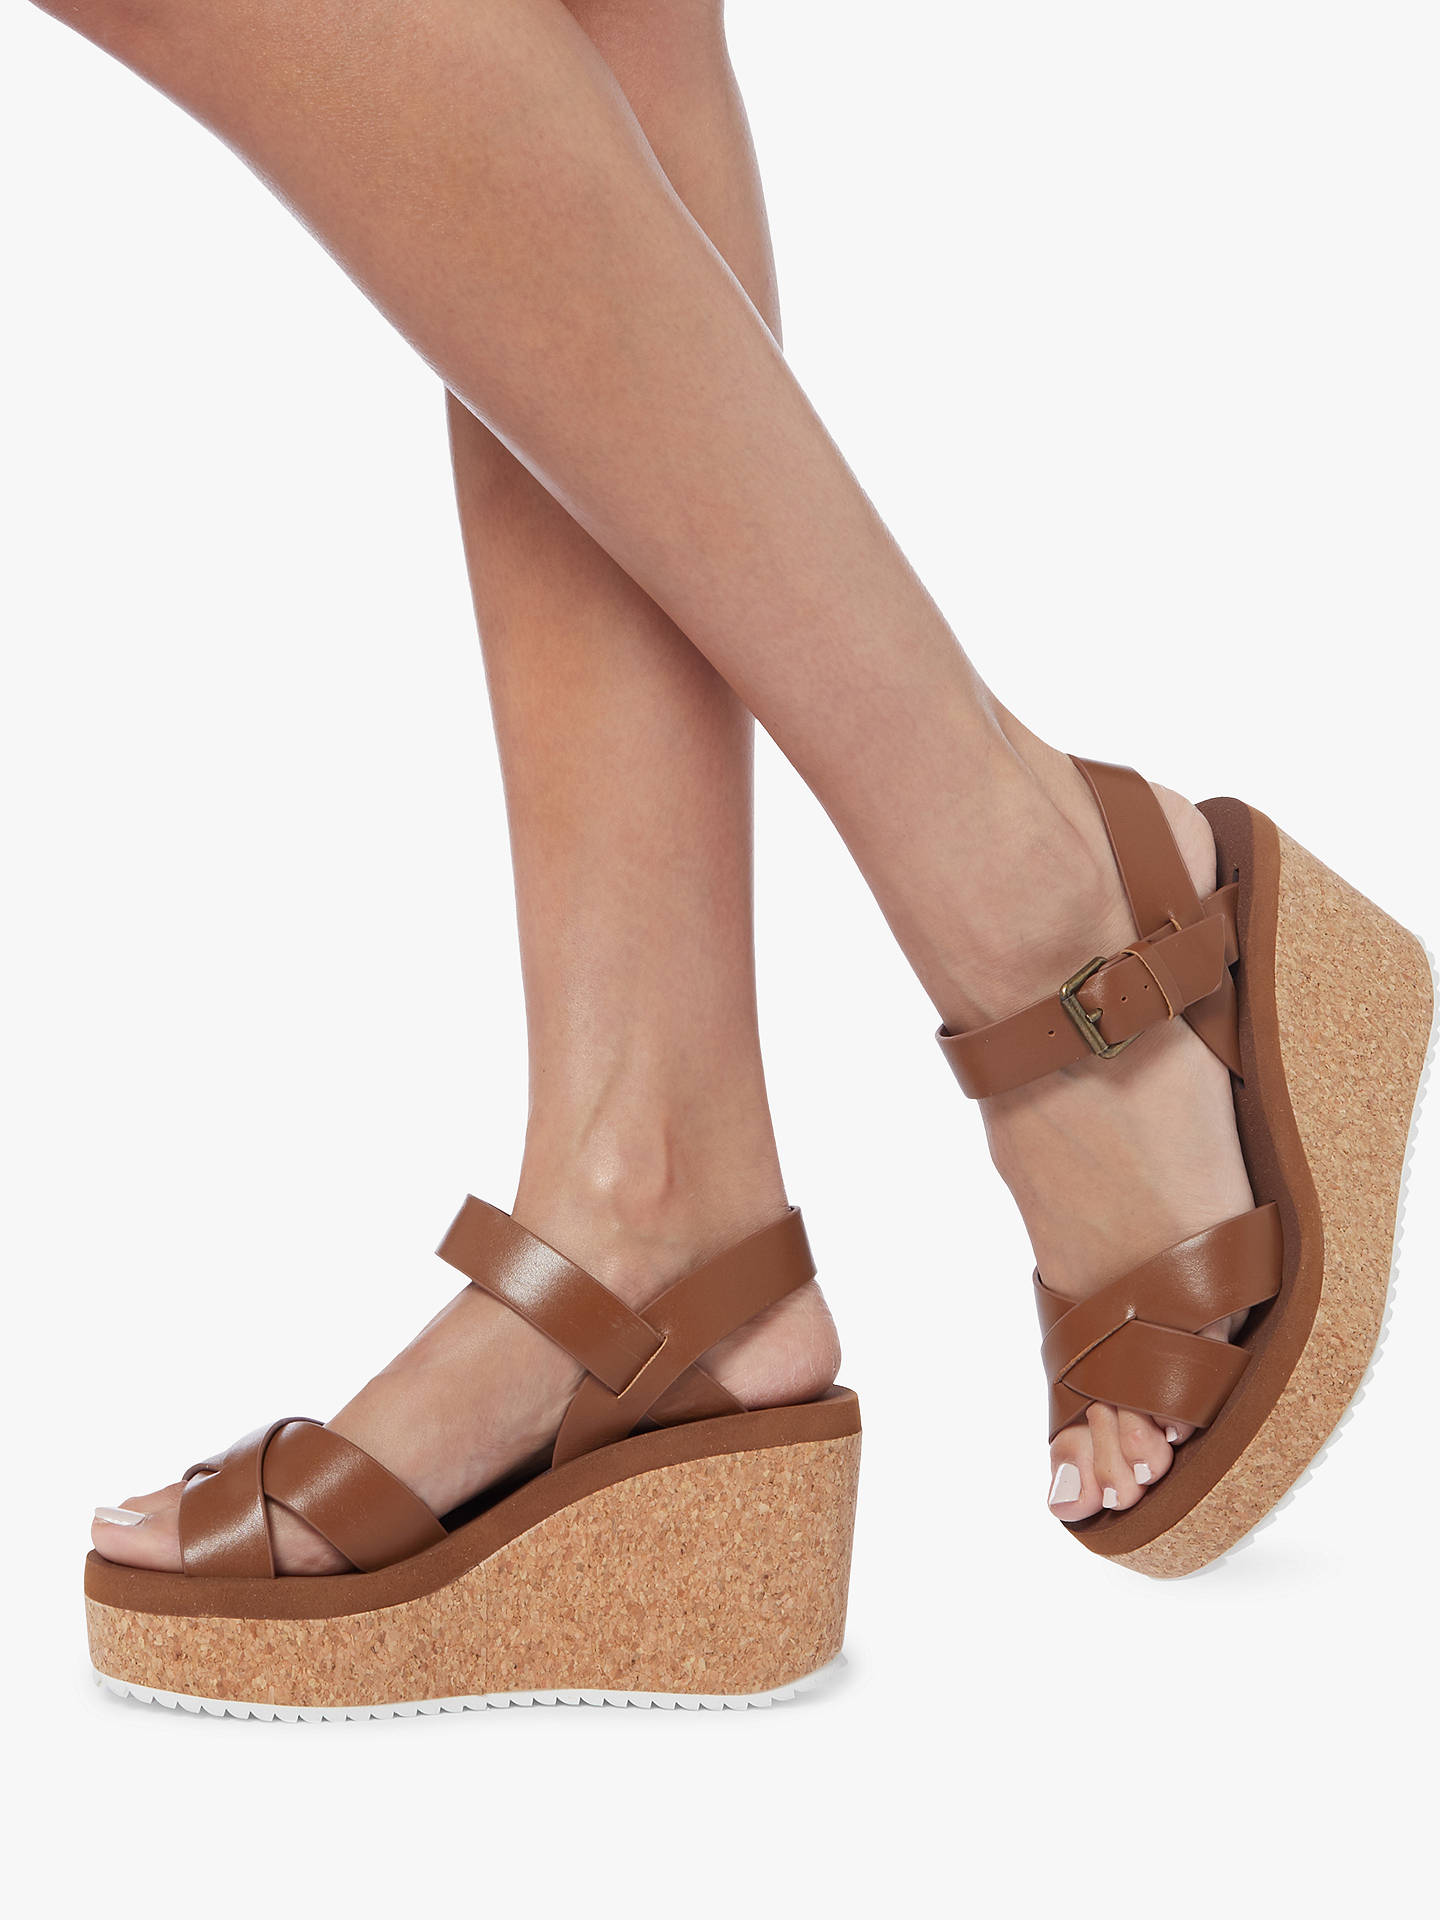 clearance sale official store new styles Steve Madden Gypsie Cork Wedge Sandals at John Lewis & Partners